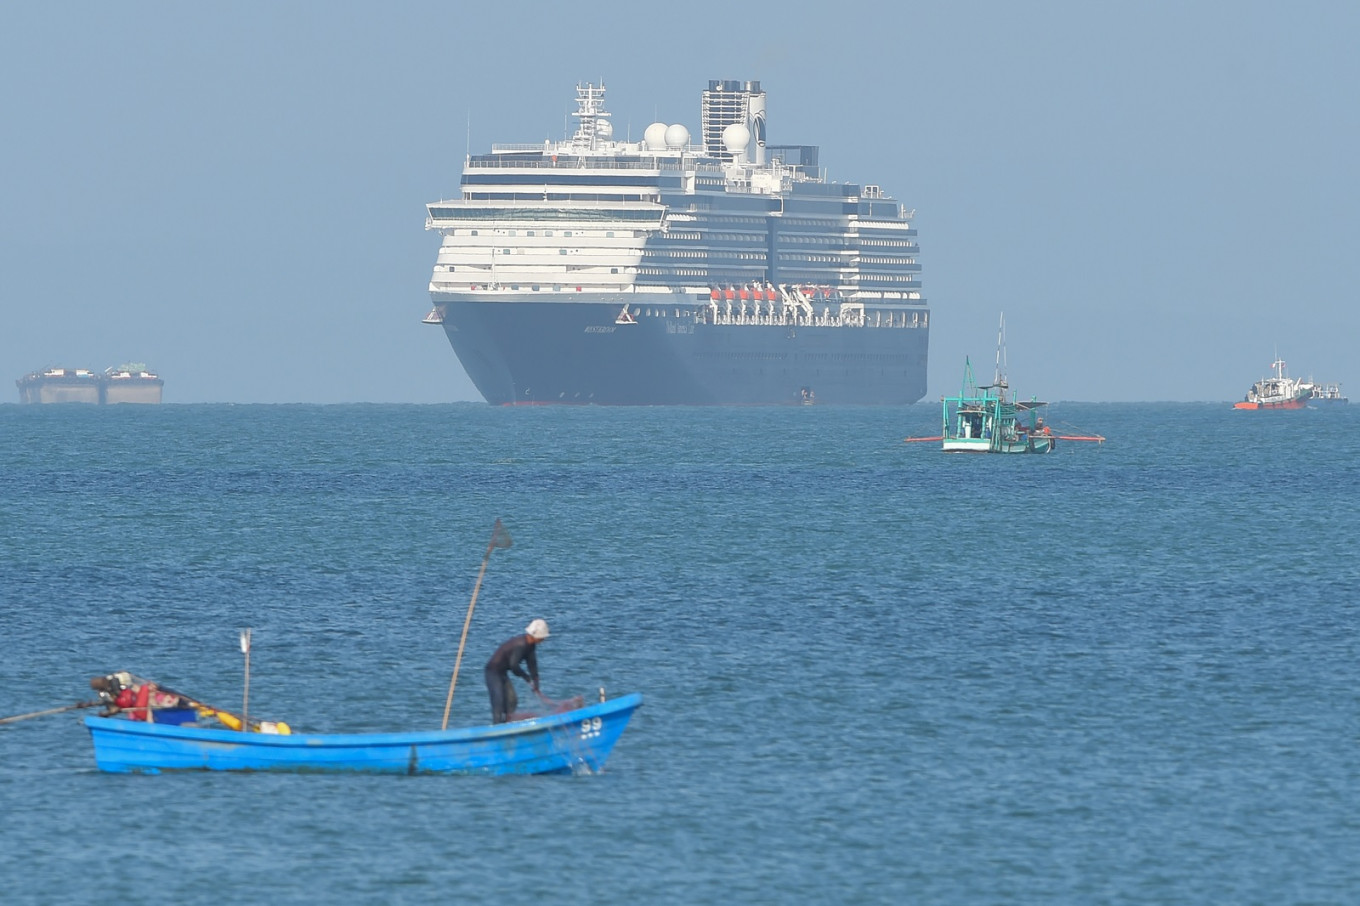 Coronavirus: 362 Indonesians aboard Westerdam cruise ship healthy, minister says